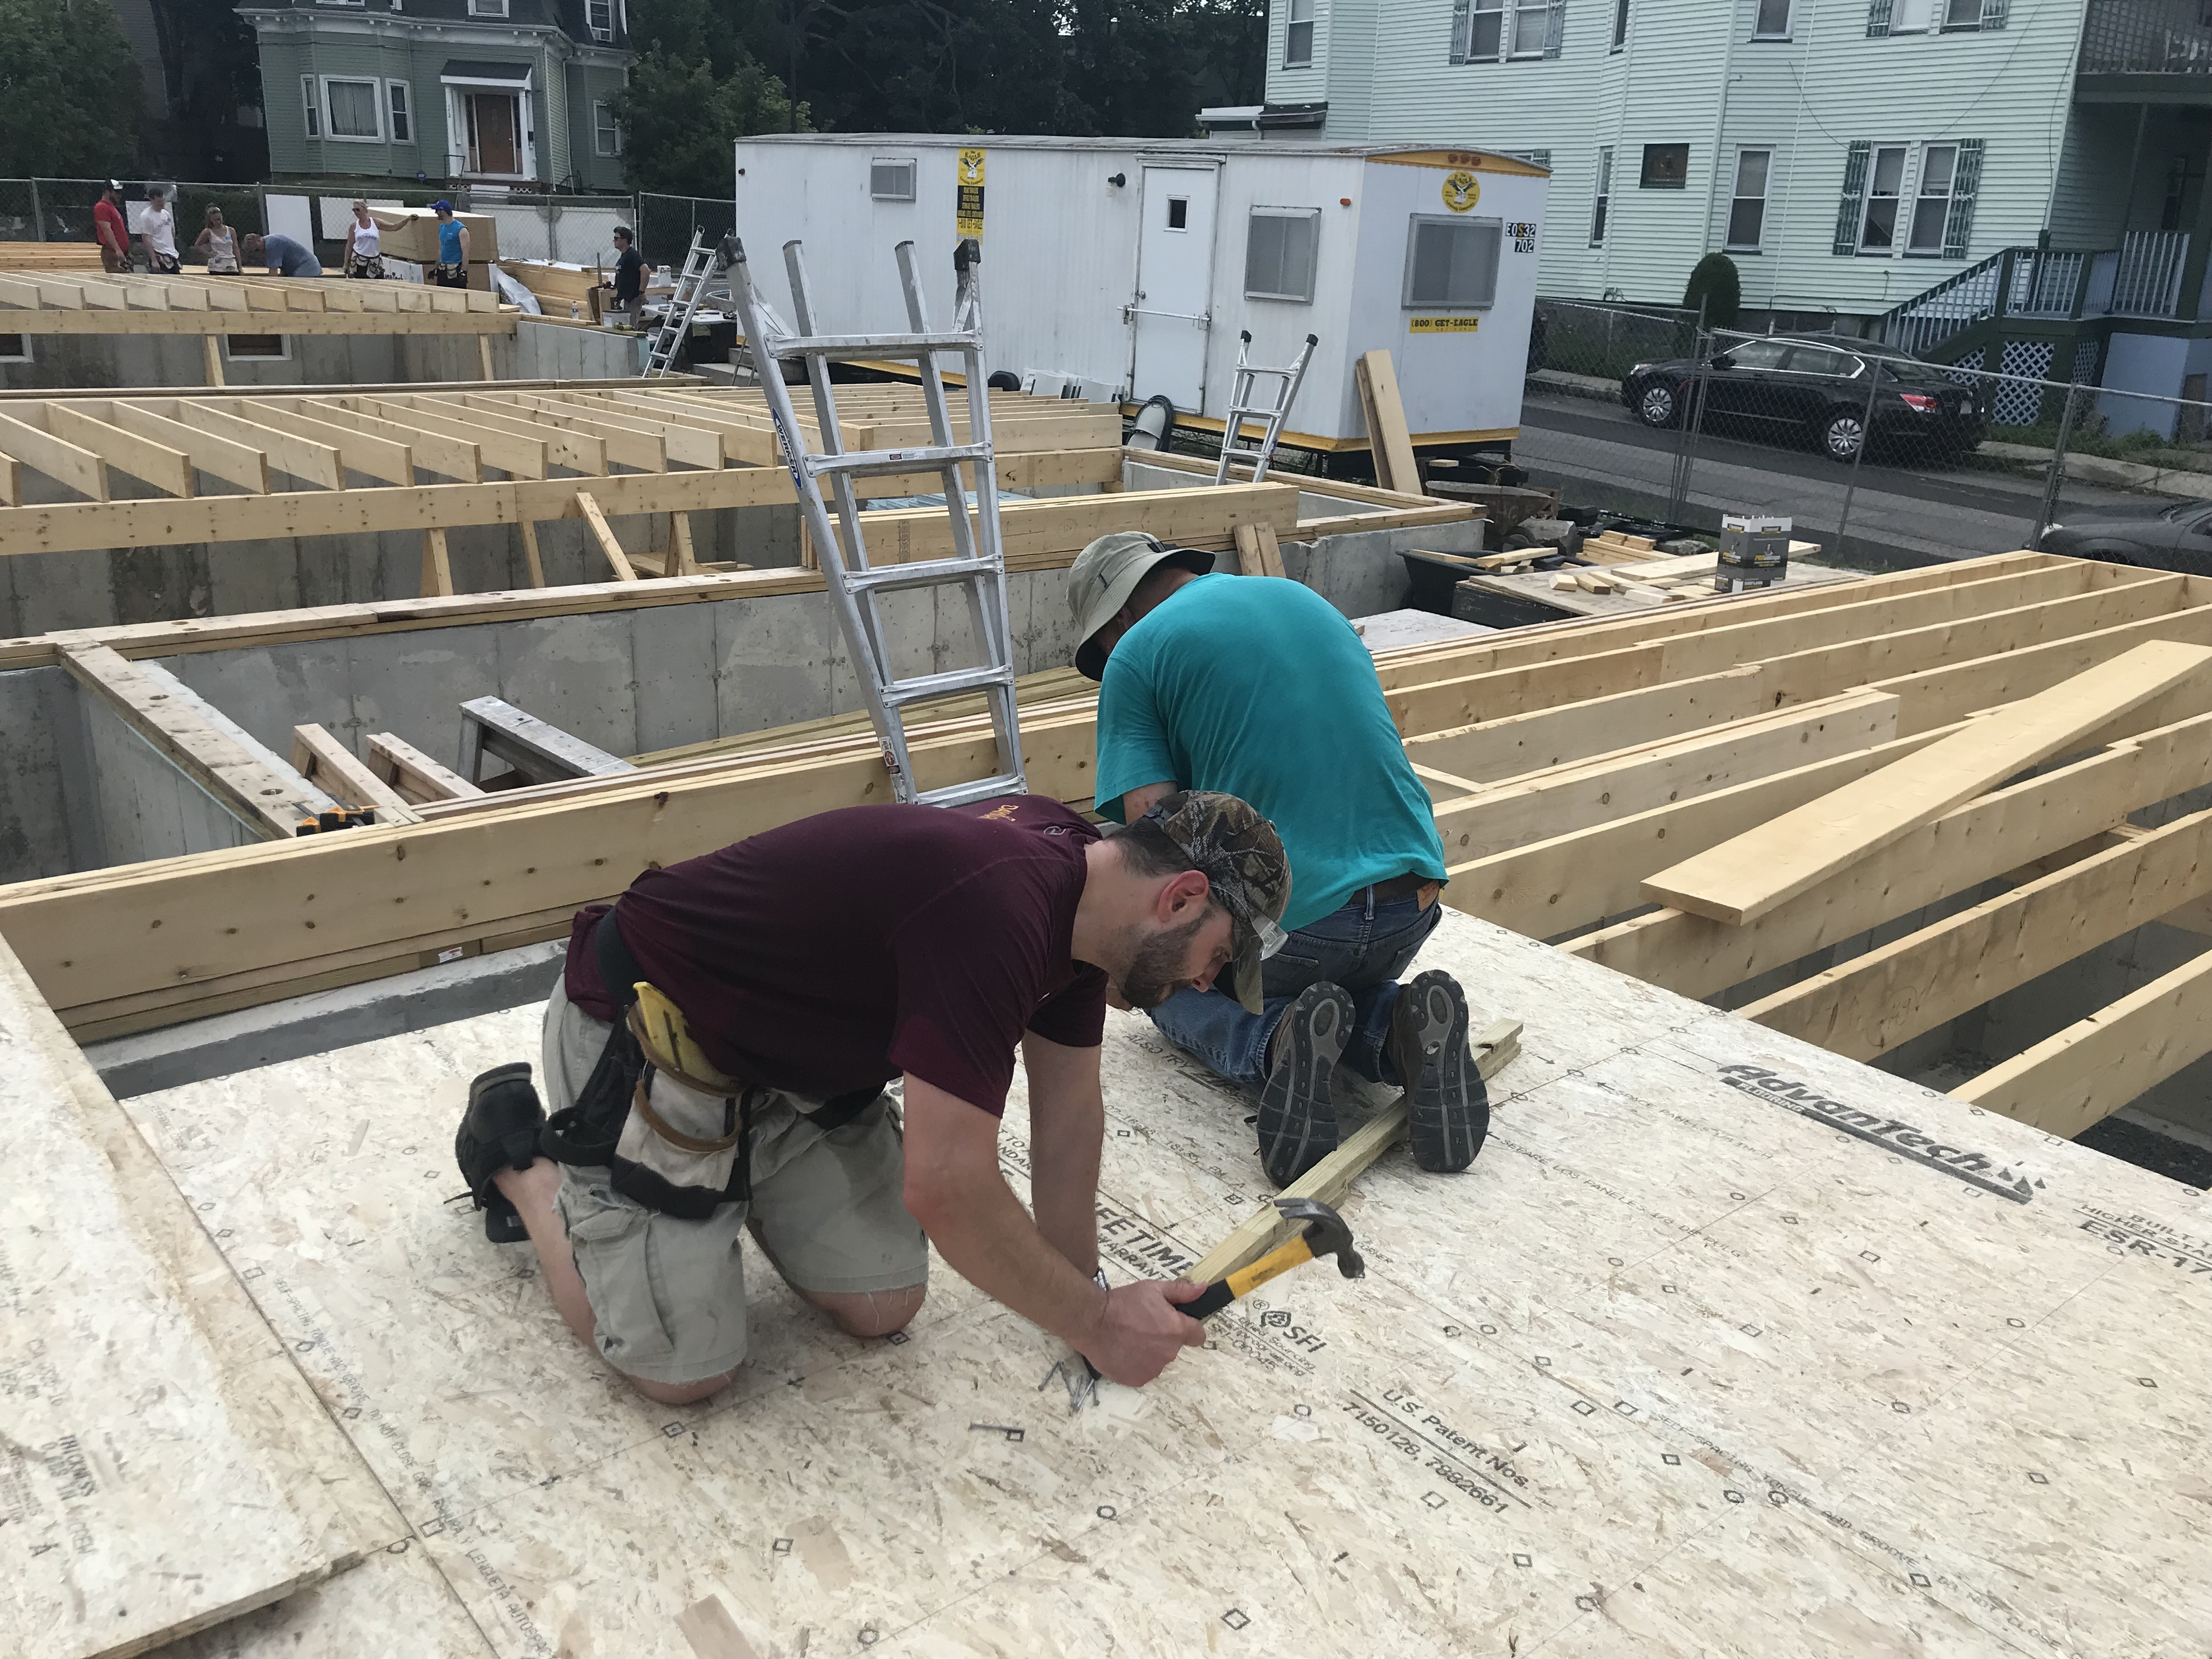 """Habitat building>                                     </a>                                 </div>                                                          <html>  <head></head>  <body>    <p><strong>Lexington, MA, August 29, 2018 </strong>– Daymark Solutions, a leading provider of information technology solutions, today announced that for the 5<sup>th</sup> consecutive year its employees are providing """"hands-on"""" support to help <a href="""